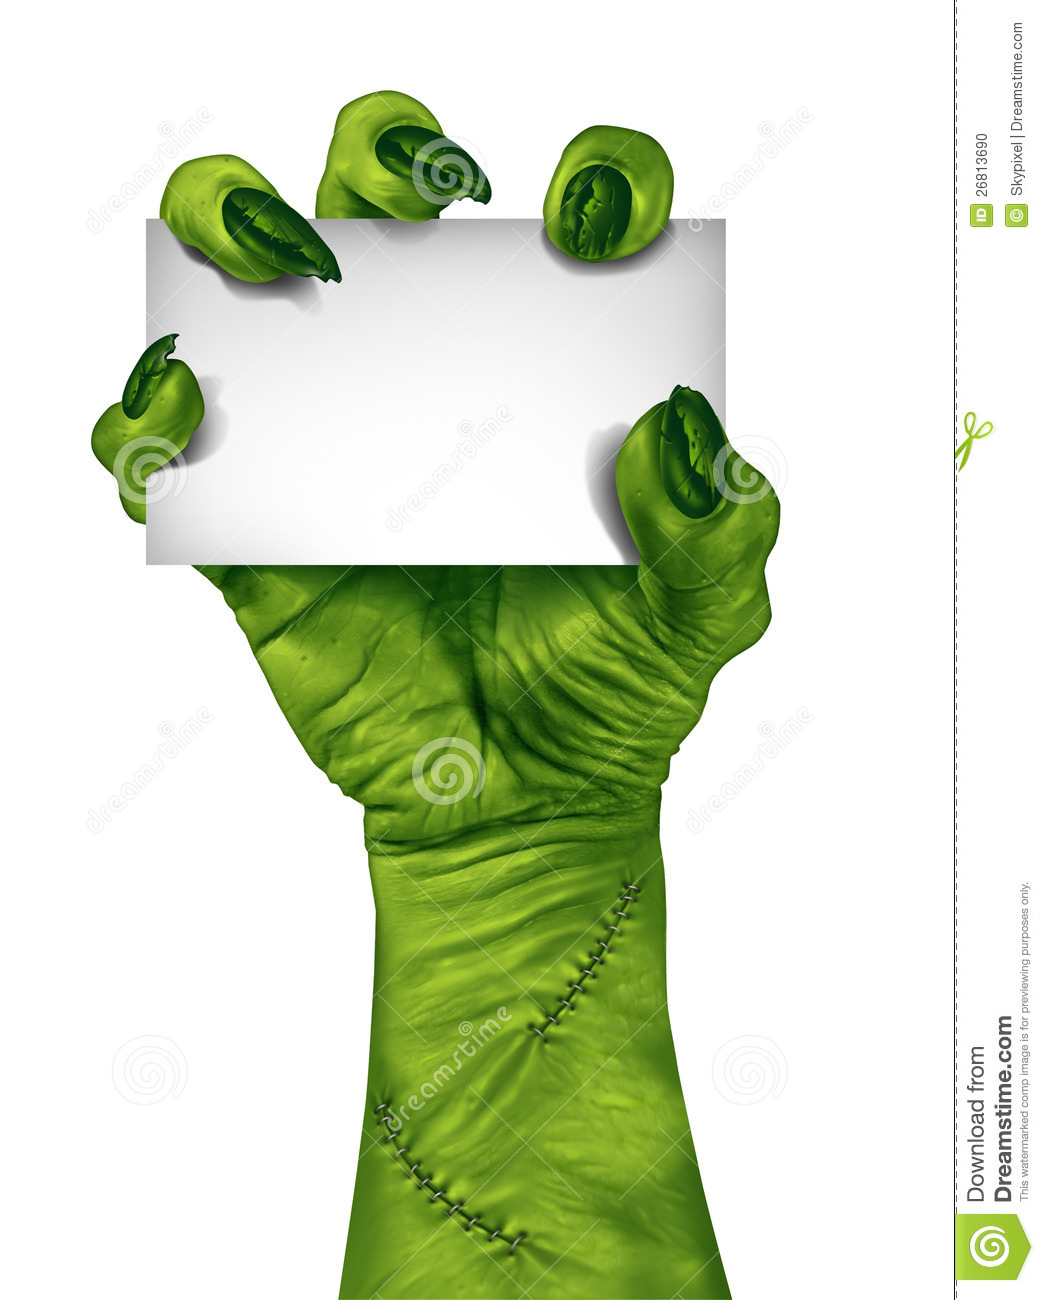 Zombie clipart cartoon character Zombie Hand Hand Download Clipart